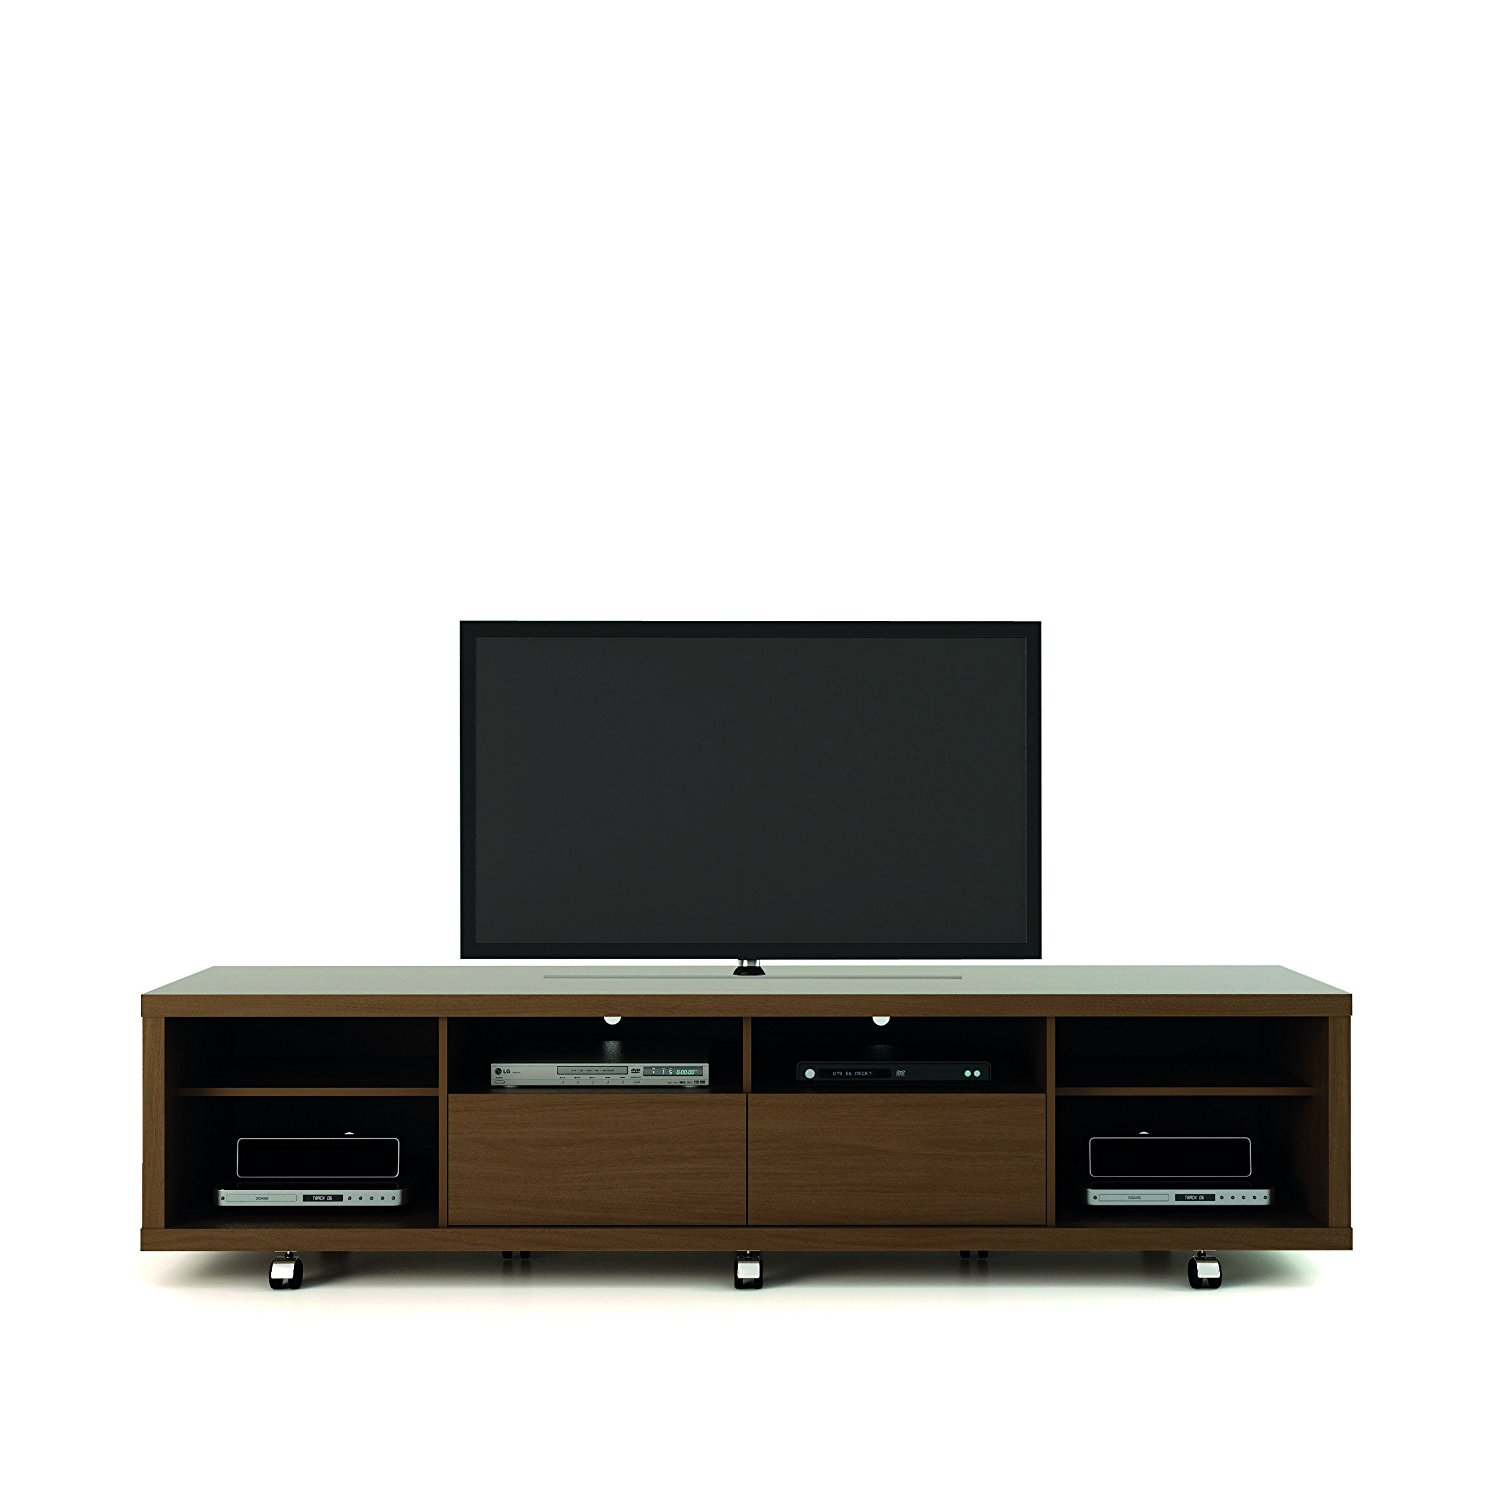 Cheap Tv Stand Free Standing Find Tv Stand Free Standing Deals On Line At Alibaba Com